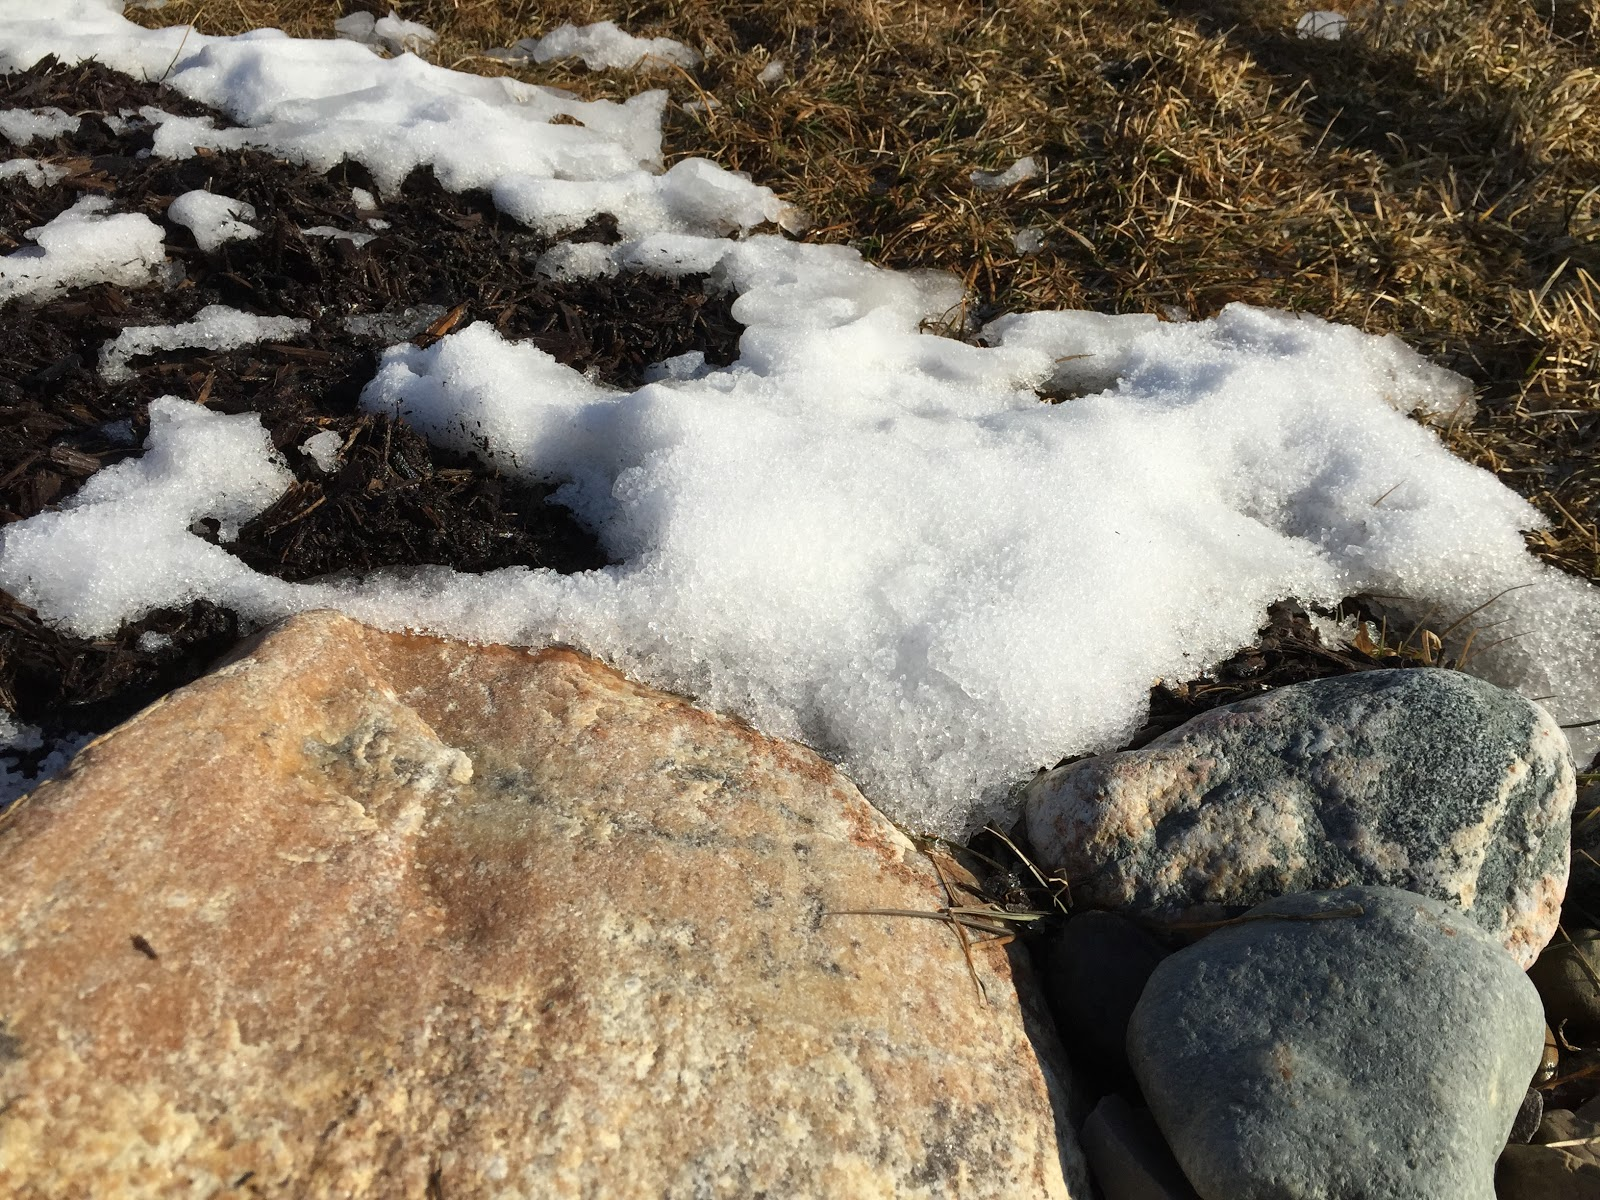 melting snow on rocks